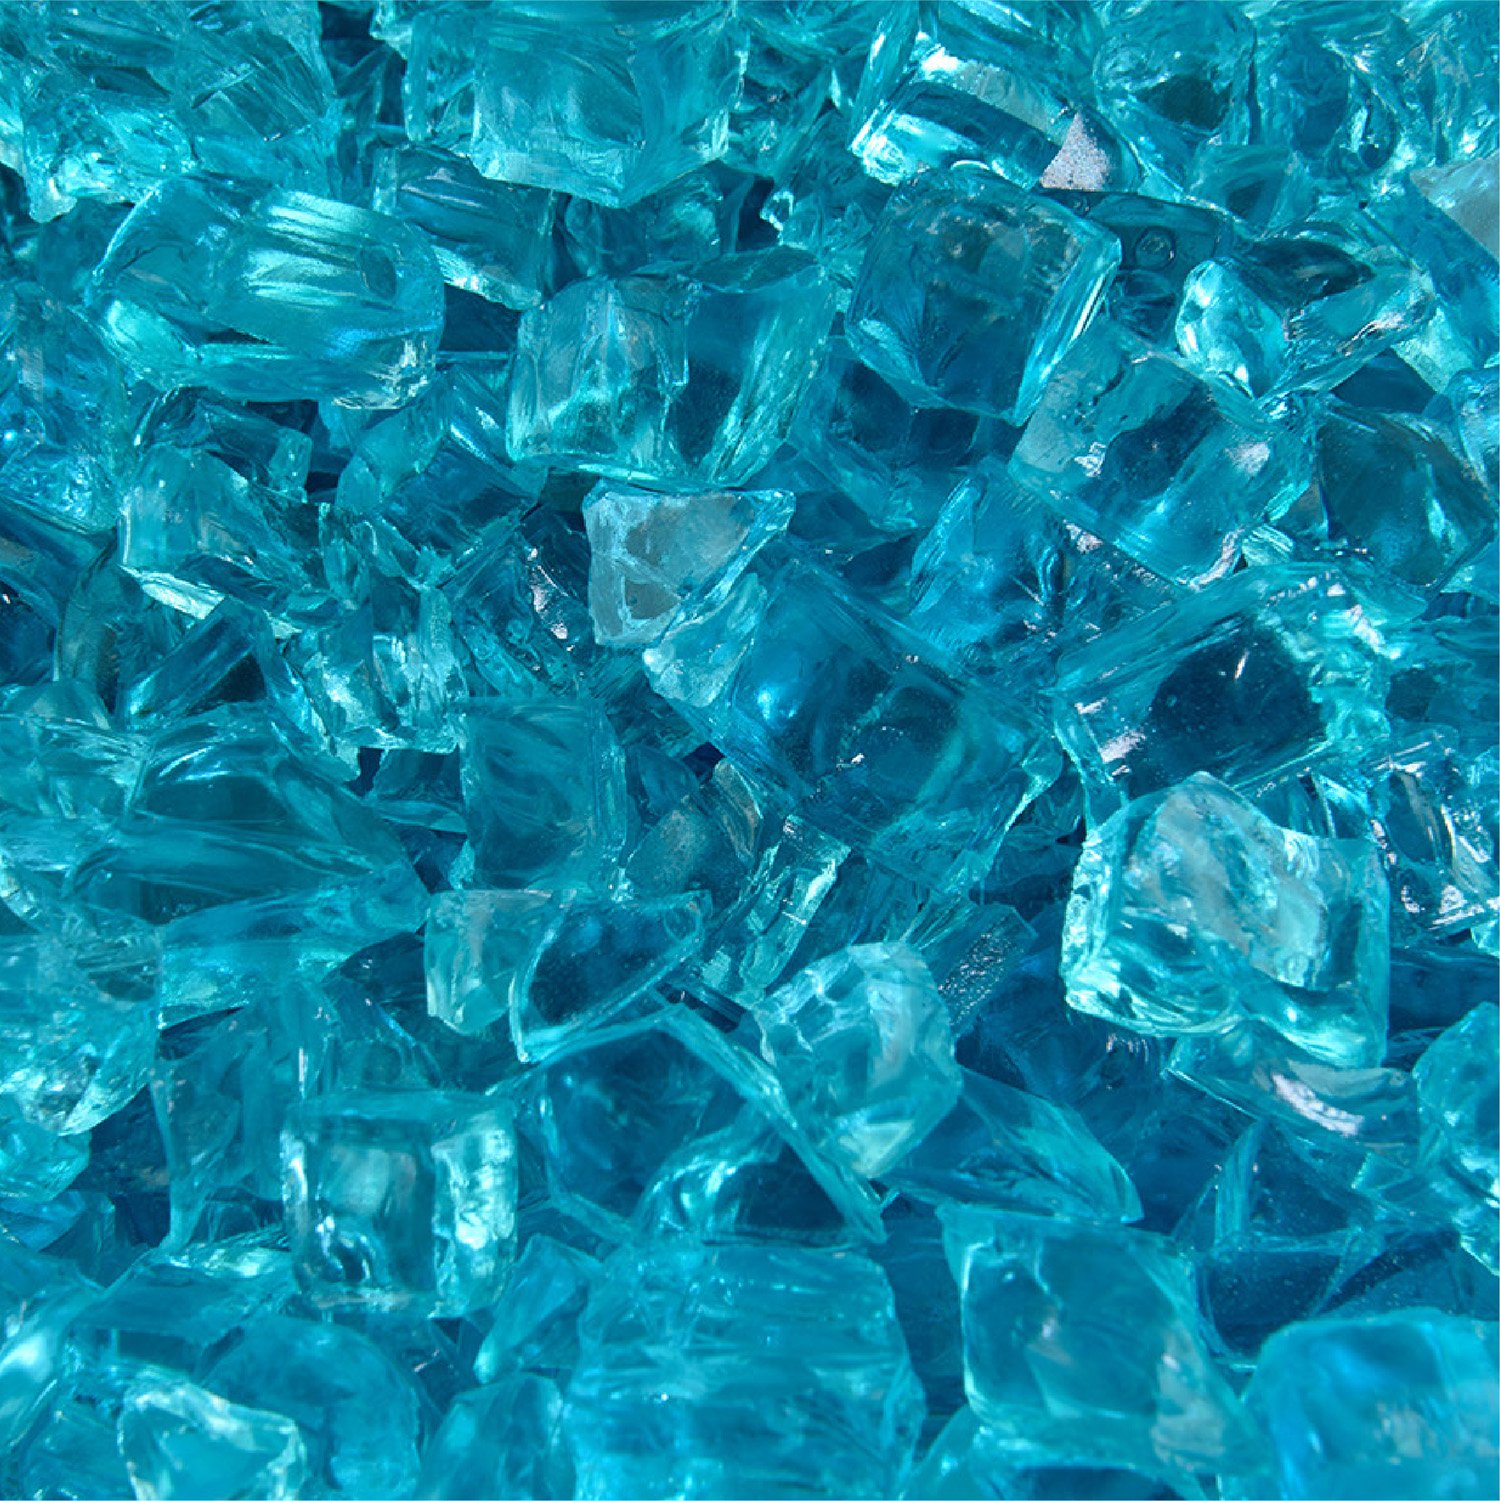 c883bdbde Tahitian Blue Azuria - Fire Glass for Indoor and Outdoor Fire Pits or  Fireplaces | 10